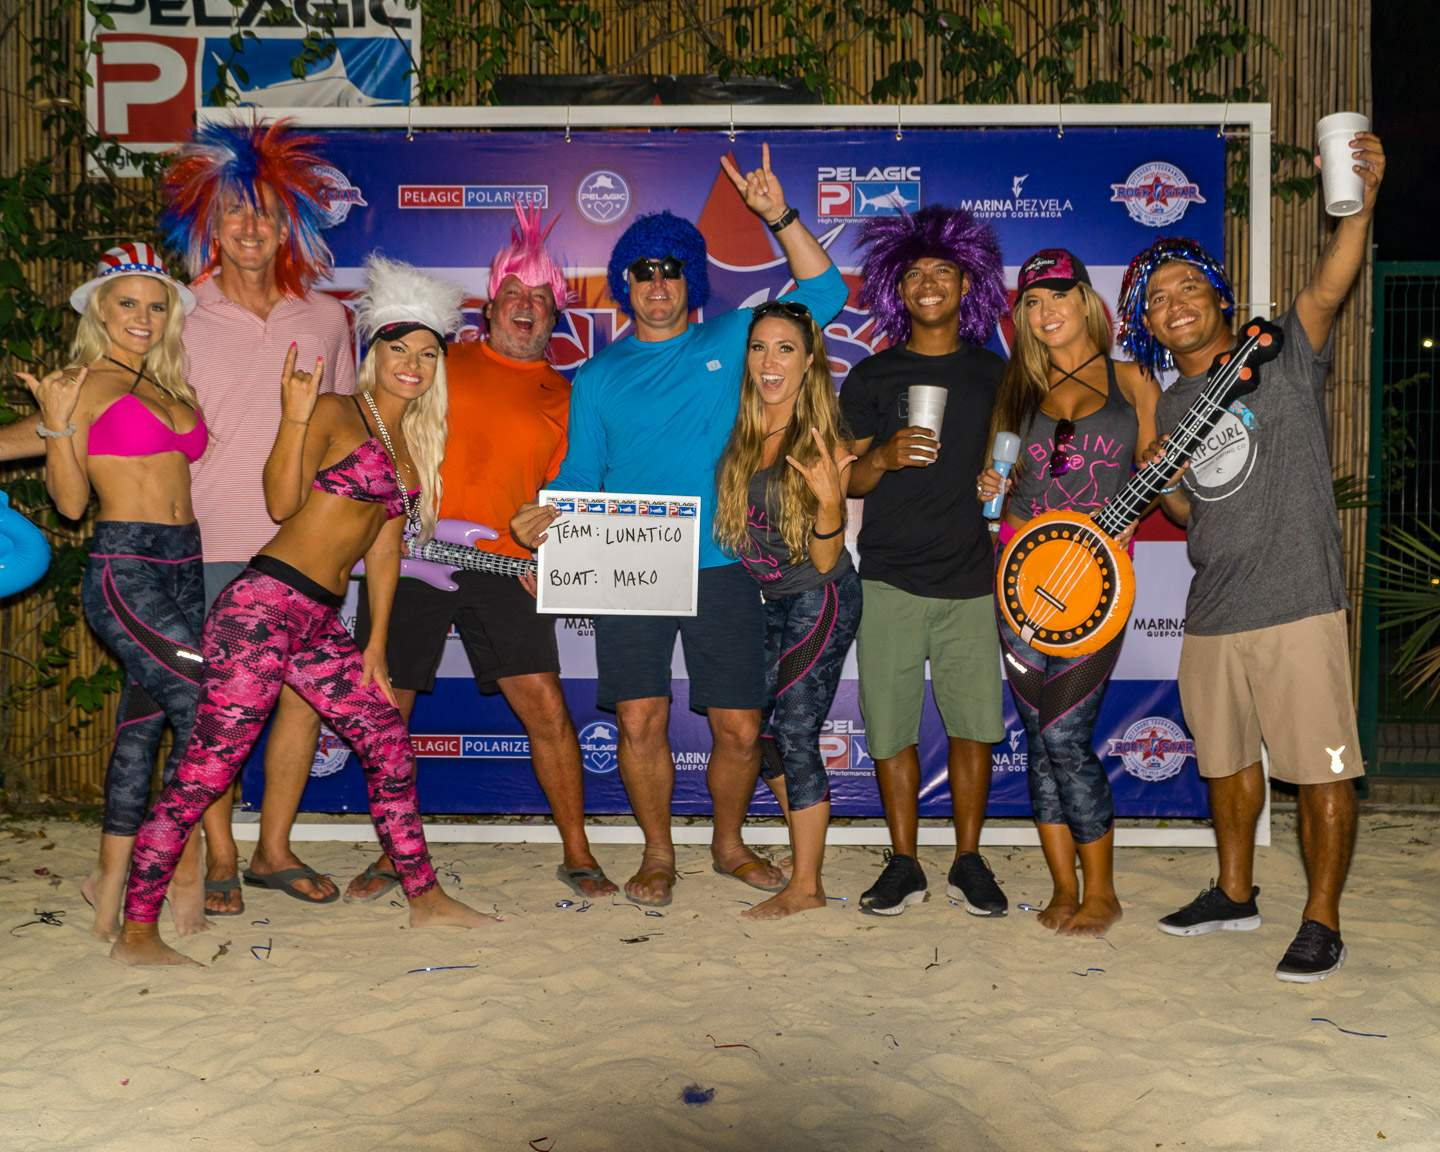 2019 Pelagic Rockstar Offshore Tournament Girls Registration